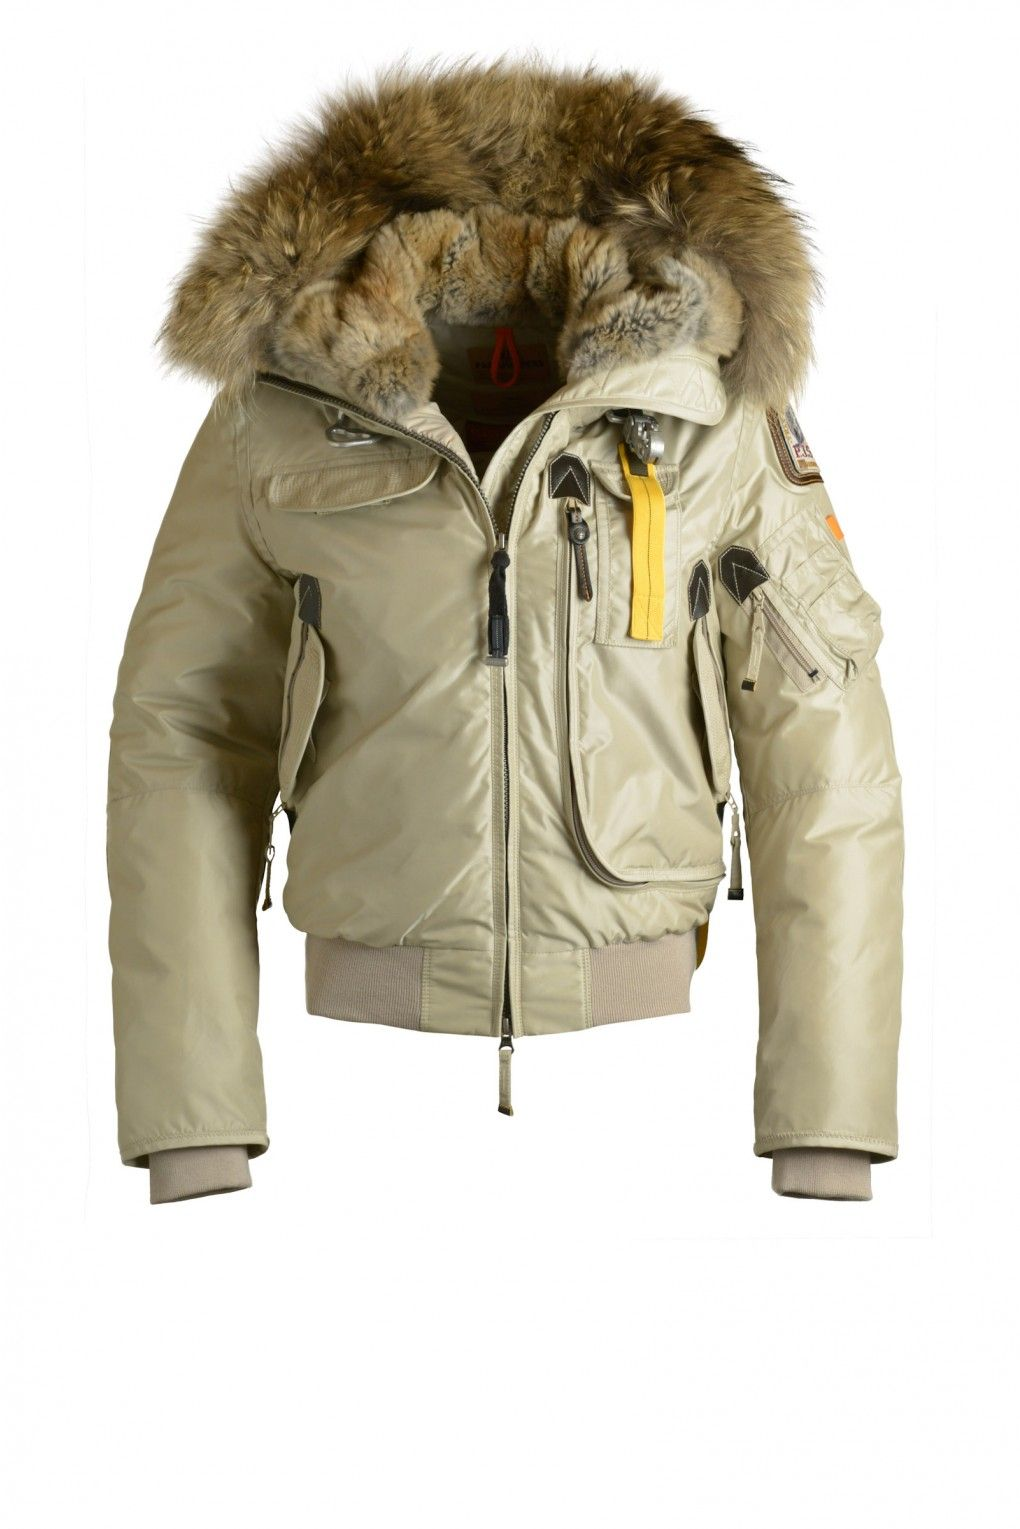 2b8ffd8571293a parajumpers lys lang bære parajumpers oslo parajumpers lett | tilby ...